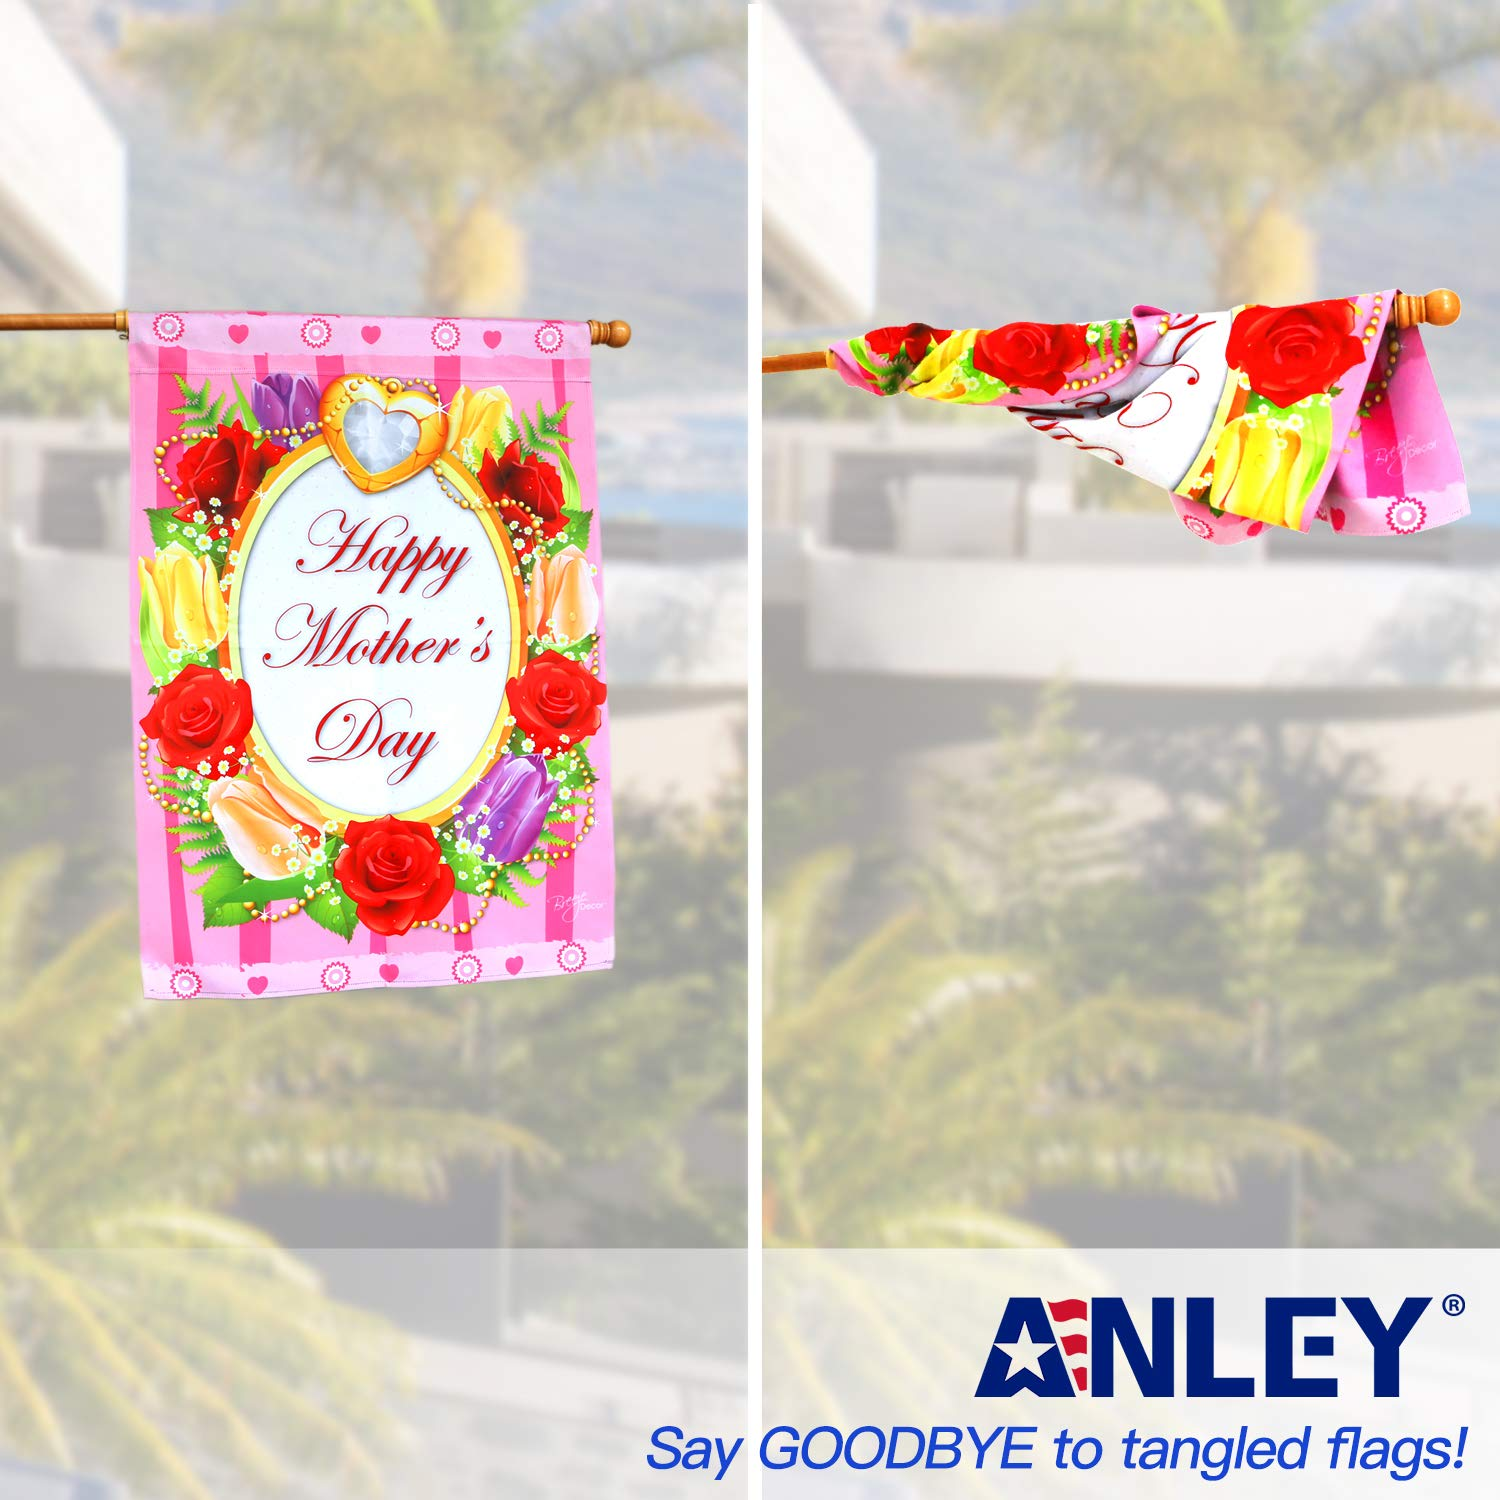 Anley 56'' Pine Wooden House Flag Pole - for Sleeve House Flags (28''x 40'') - Tangle Free Design, Rotating Rings and Anti-Wrap Tube by Anley (Image #4)